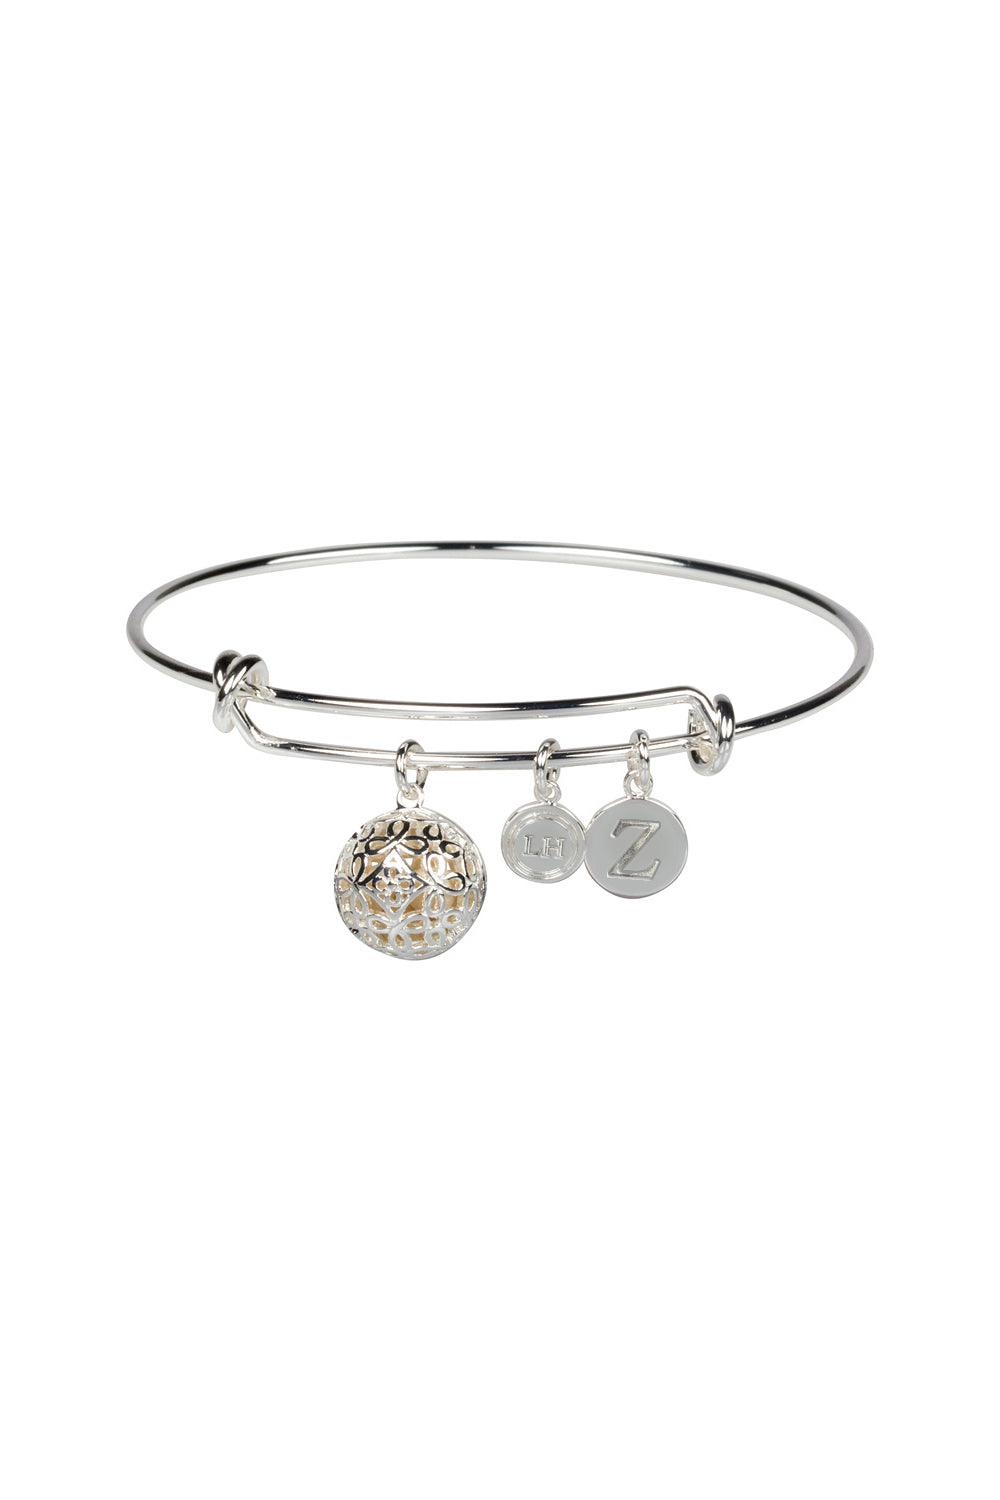 """Z"" Initial Fragrance Bangle with Silver Tone Charm"